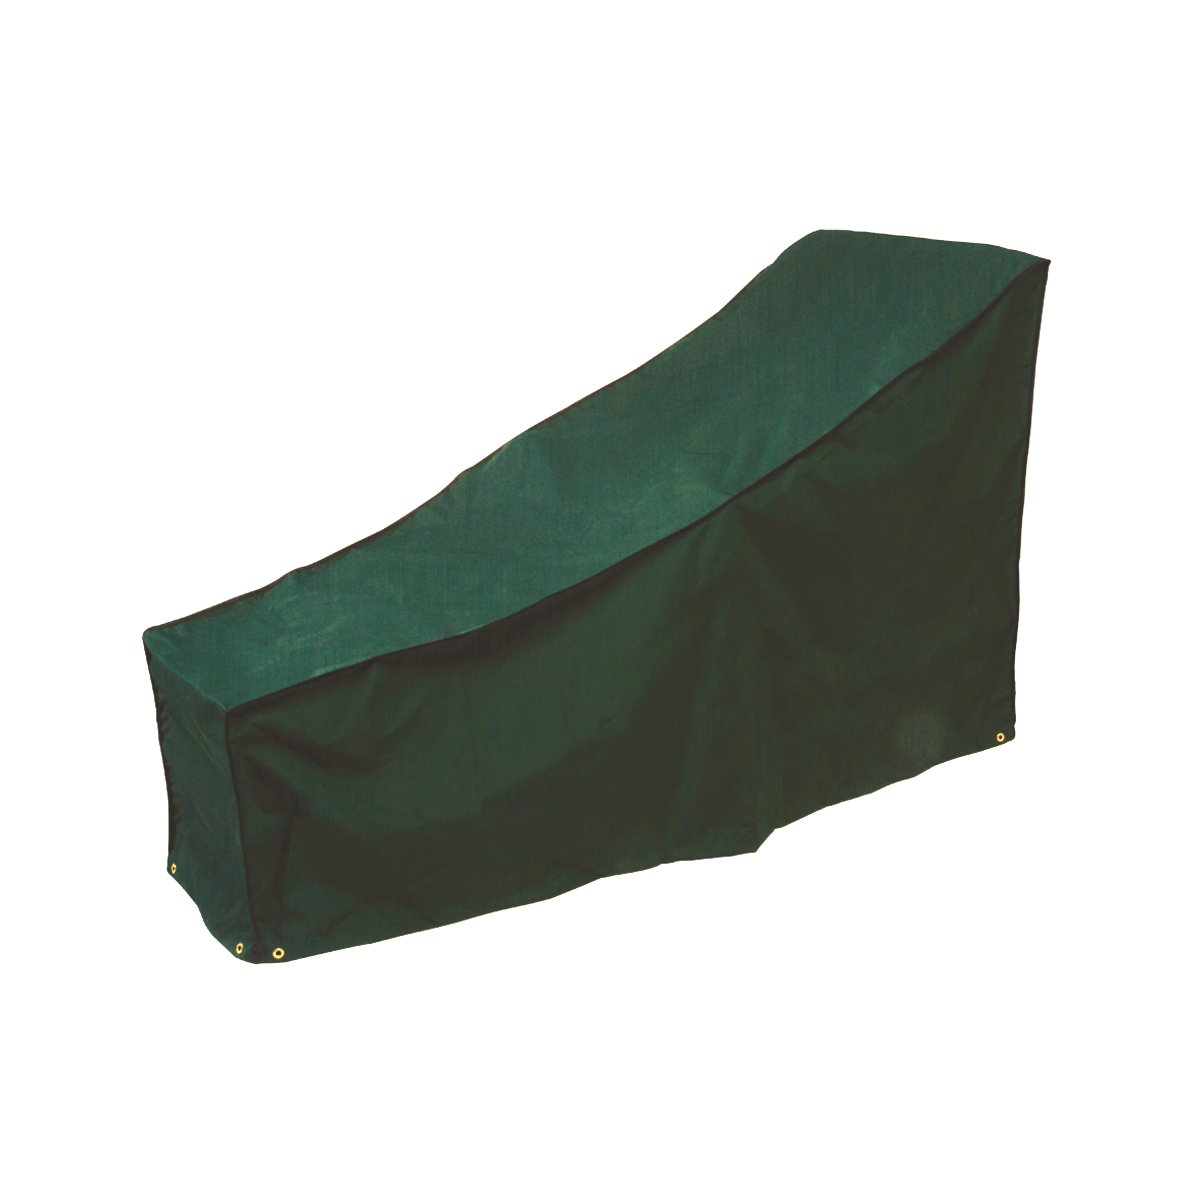 Bosmere P038 Premier Steamer Chair Green Cover Bosmere Products Ltd